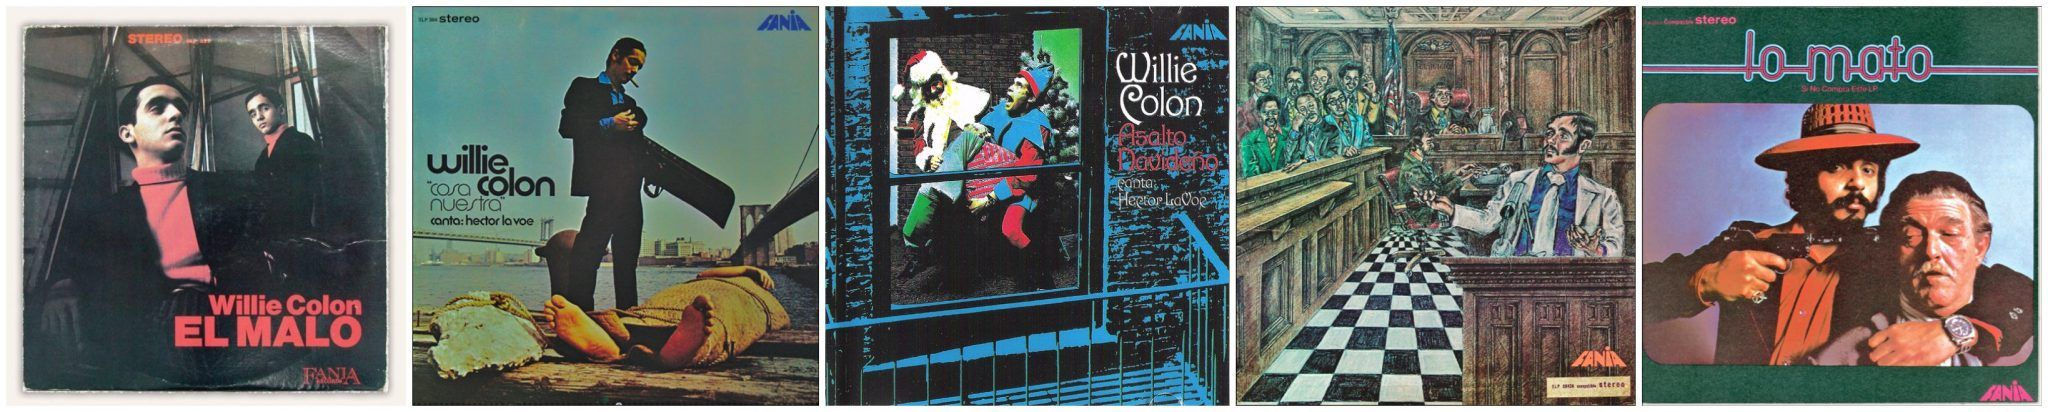 Willie Colon Solo